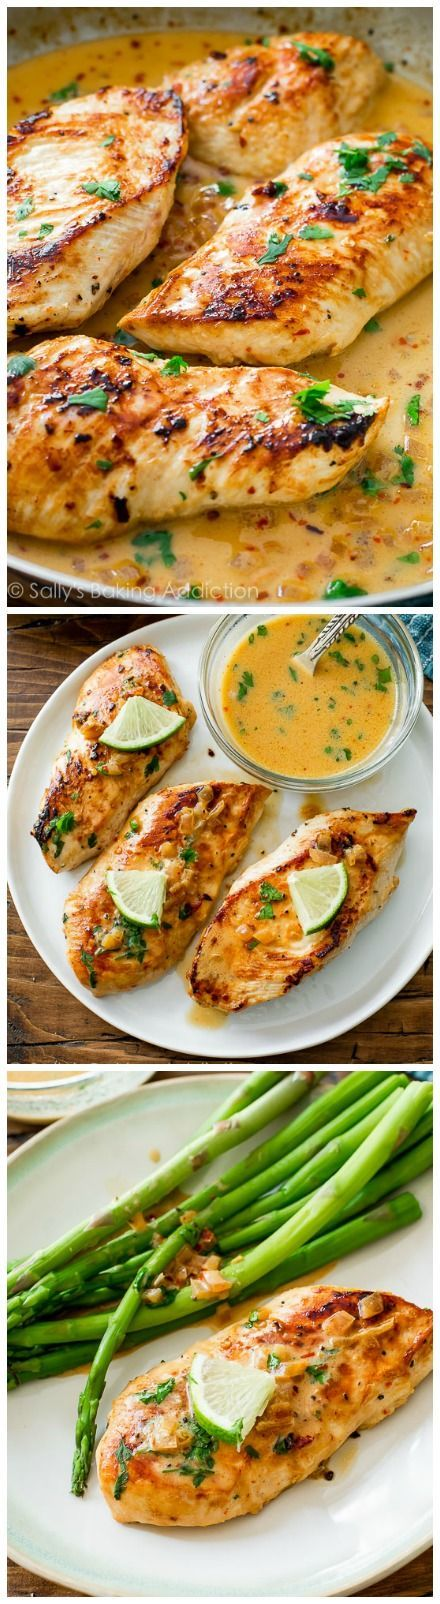 Skillet chicken with cilantro lime sauce: One skillet and 40 minutes is all it takes to transform chicken into a flavor-packed meal!